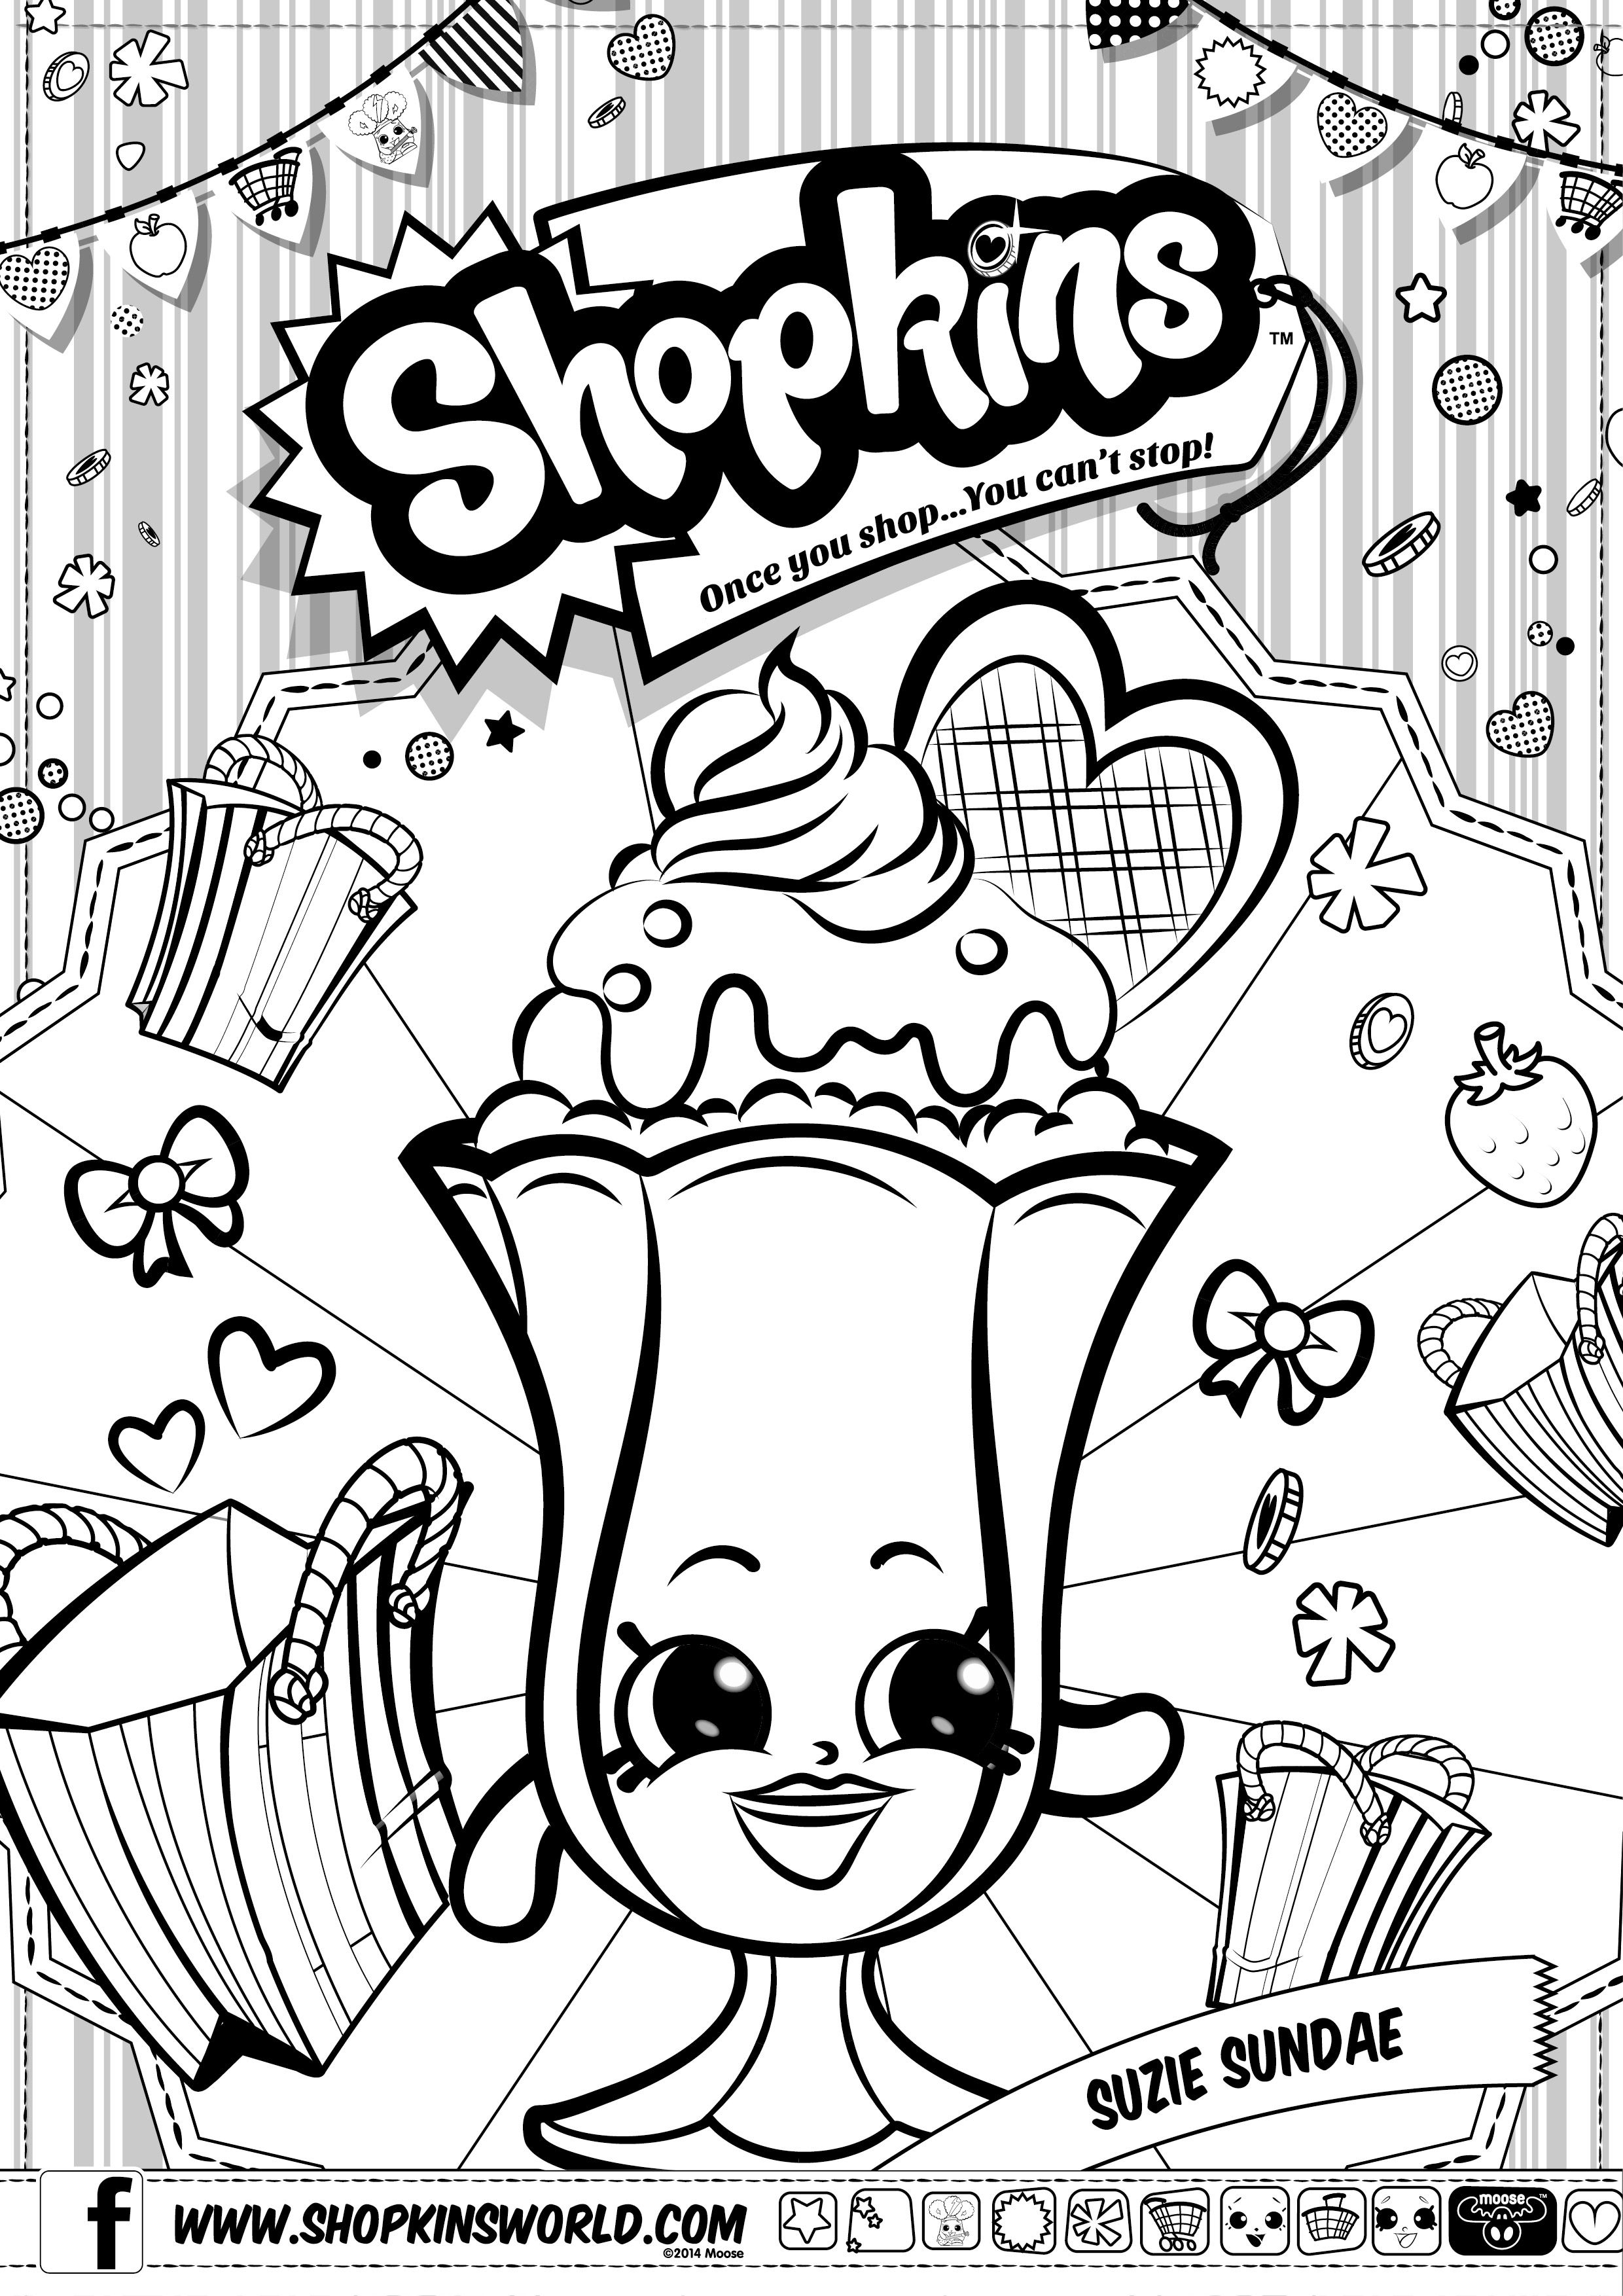 charlie and the chocolate factory coloring sheets charlie bucket39s golden ticket coloring page free and coloring charlie factory chocolate the sheets